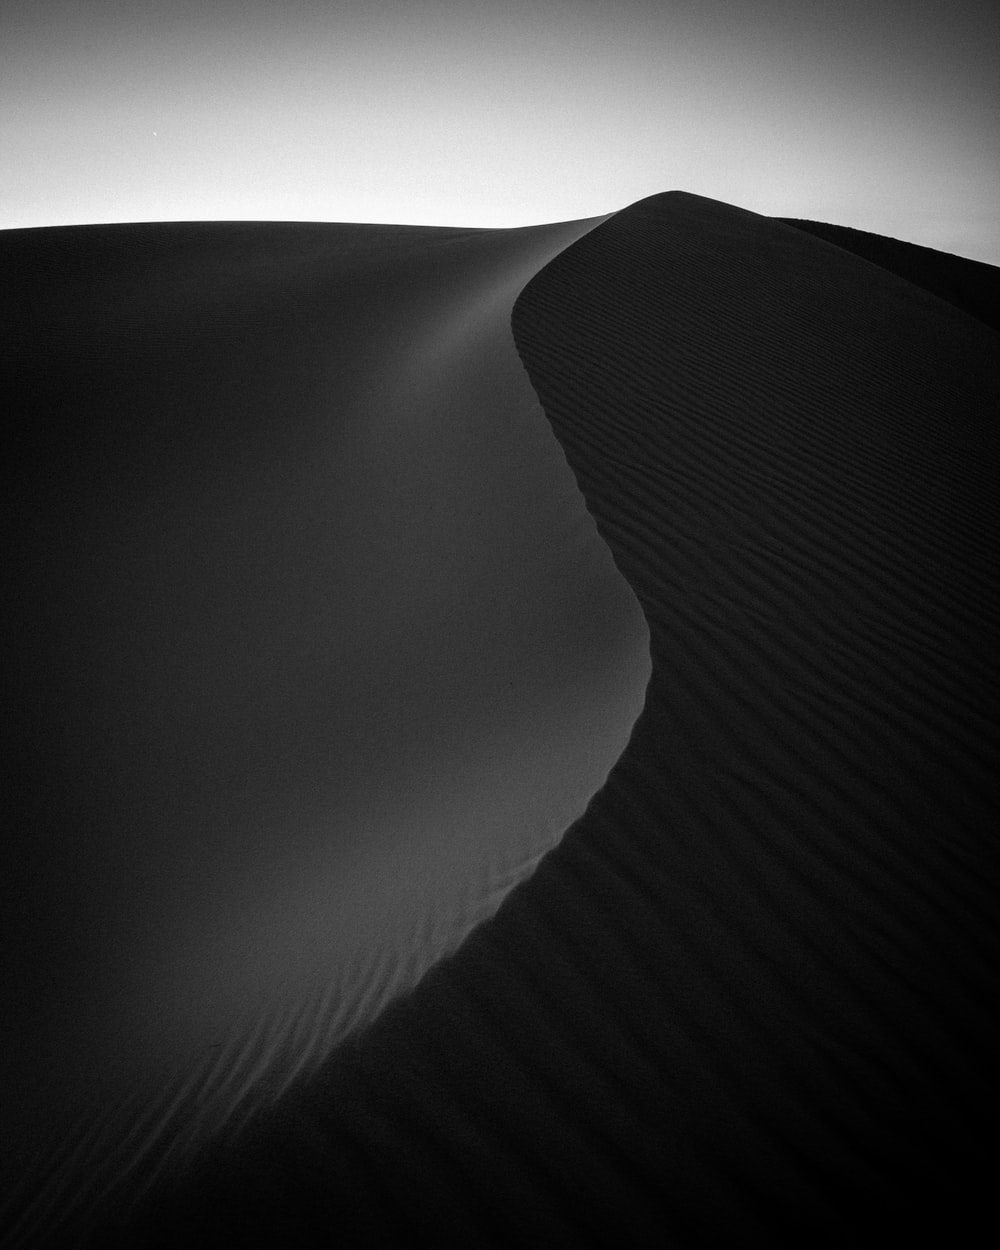 grayscale aerial photography of desert